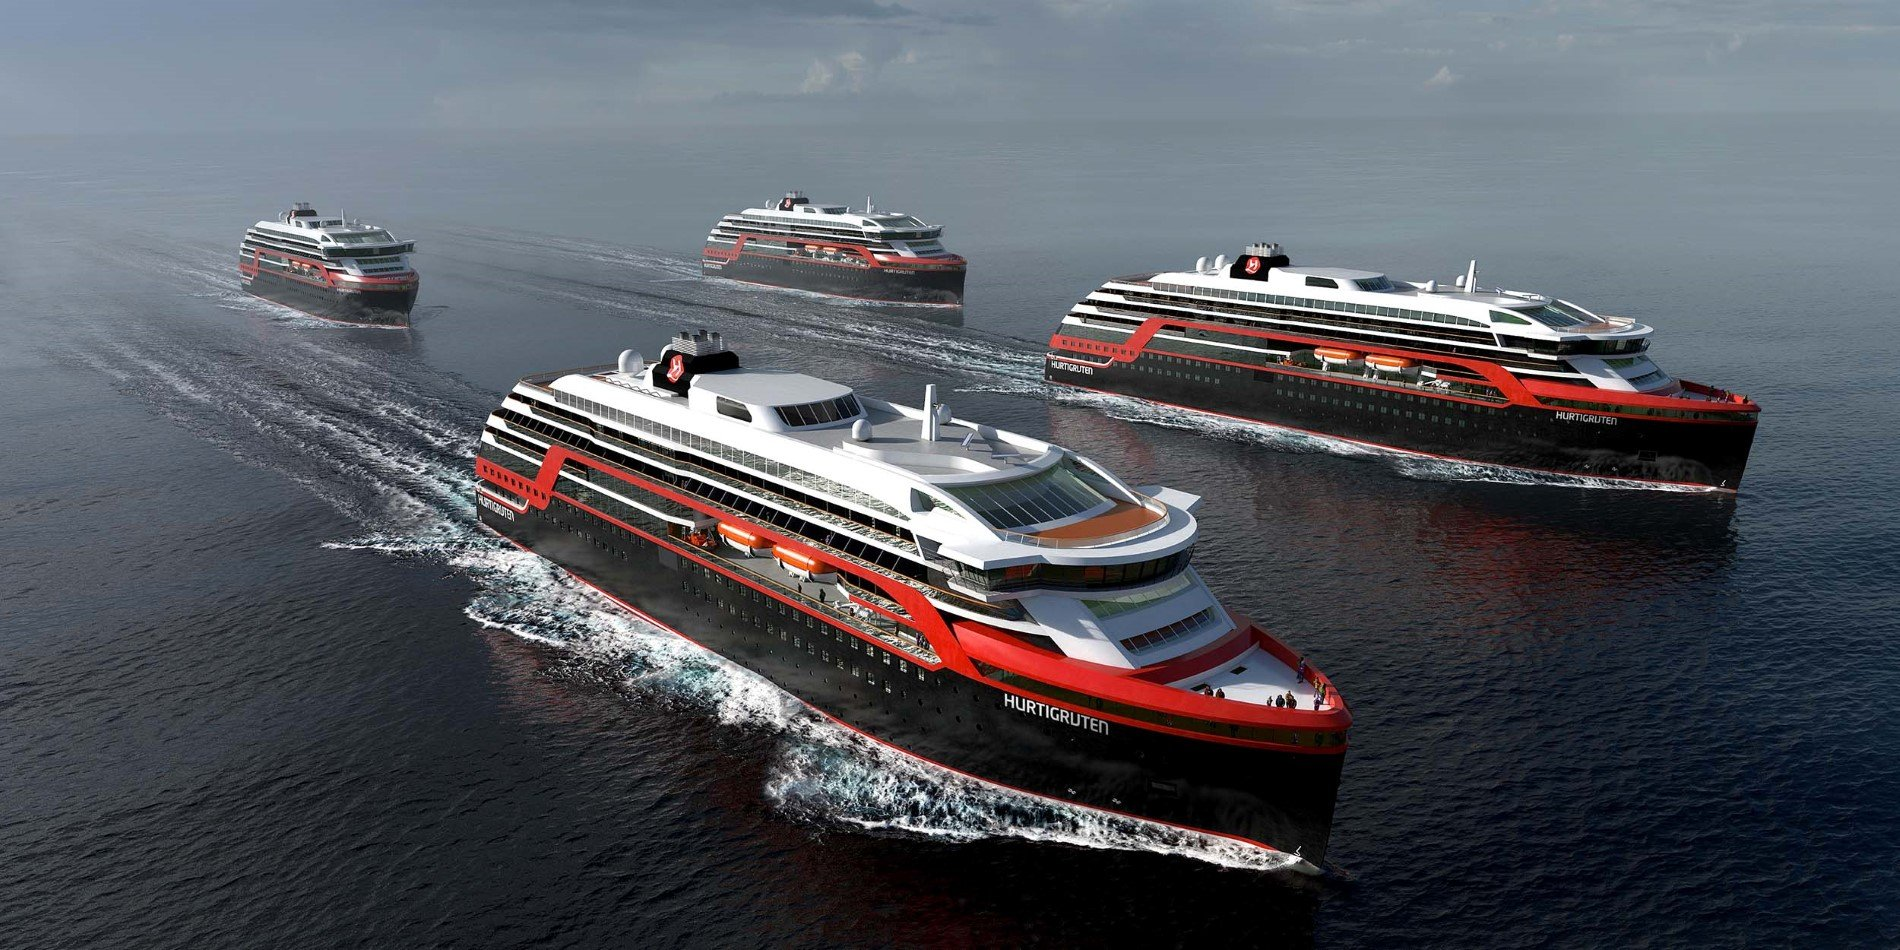 4 new explorer ships have been announced by Hurtigruten